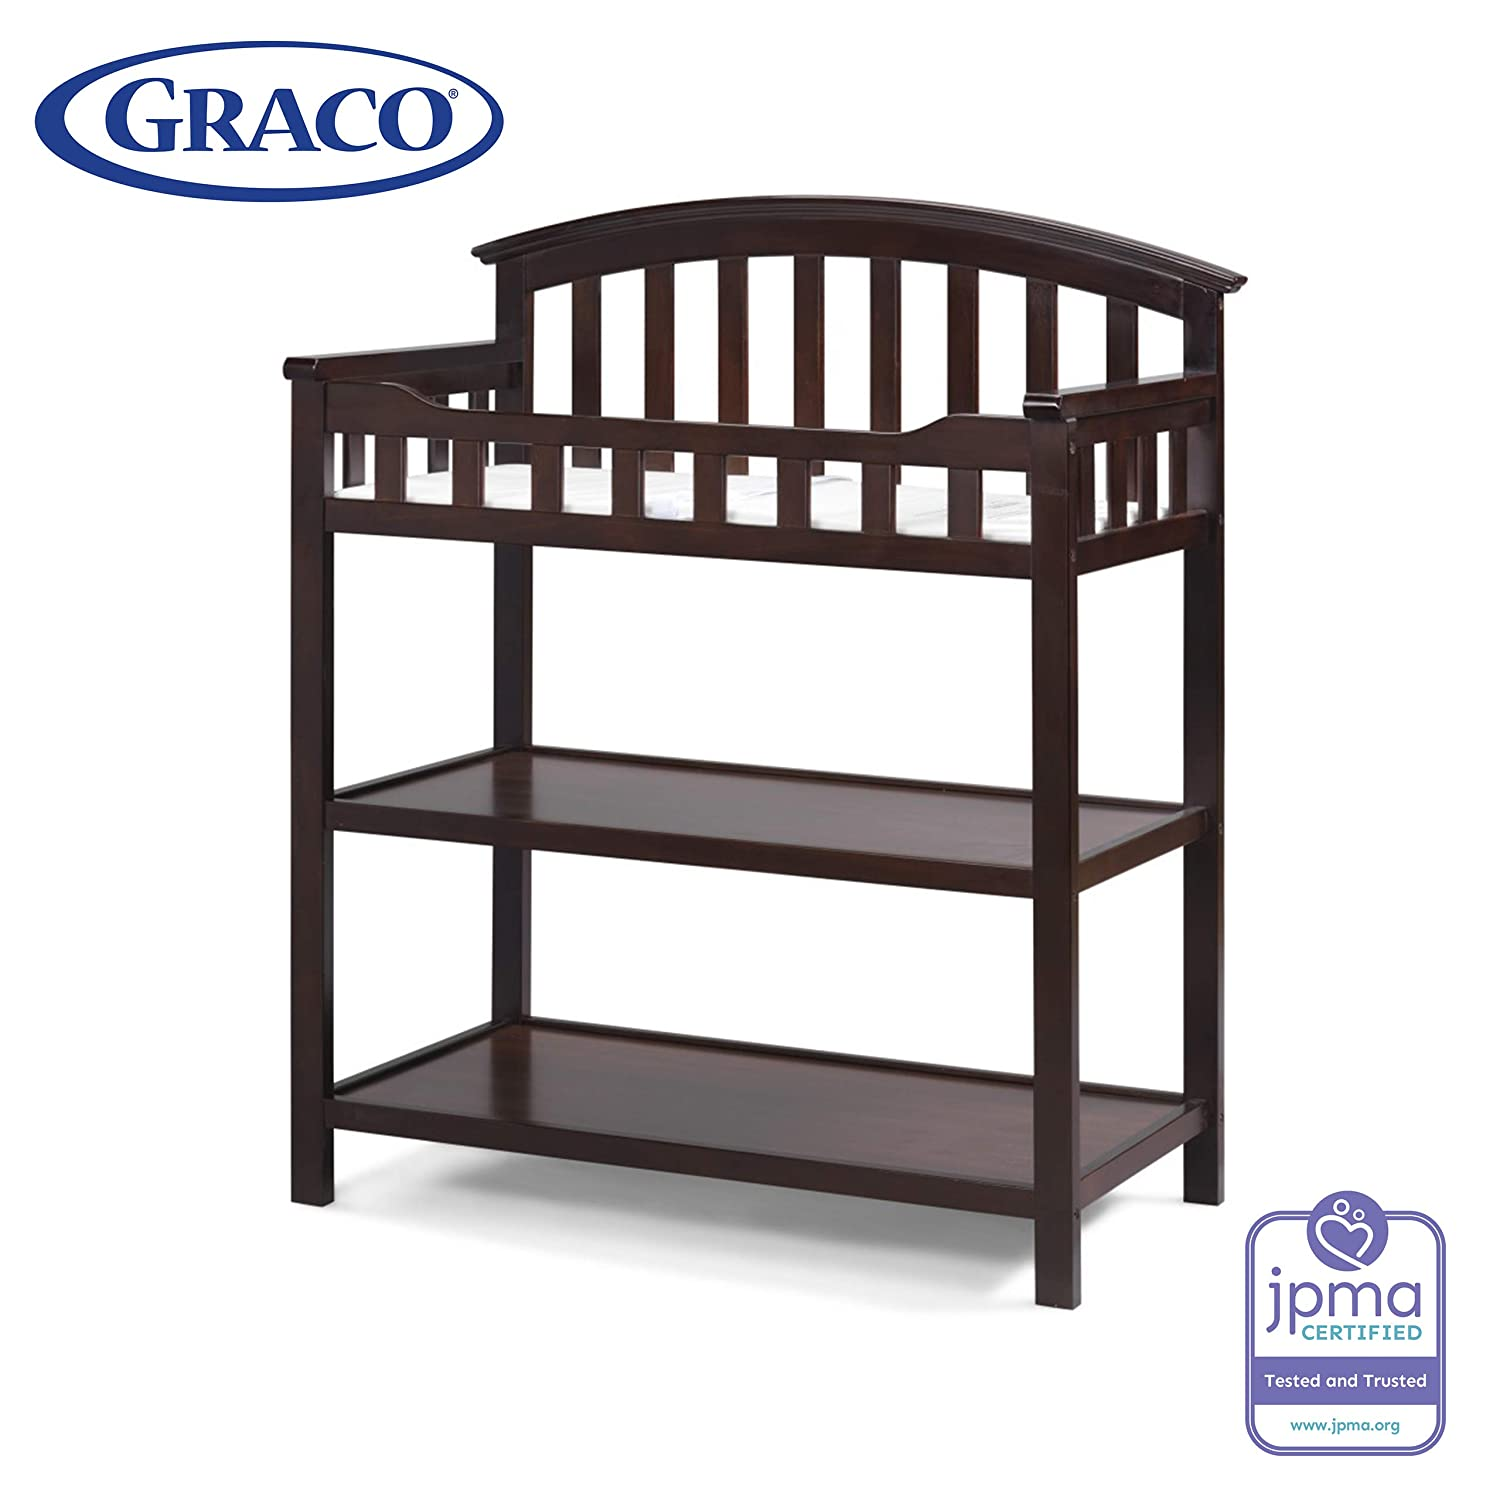 Graco Changing Table with Water-Resistant Change Pad and Safety Strap, Espresso, Multi Storage Nursery Changing Table for Infants or Babies